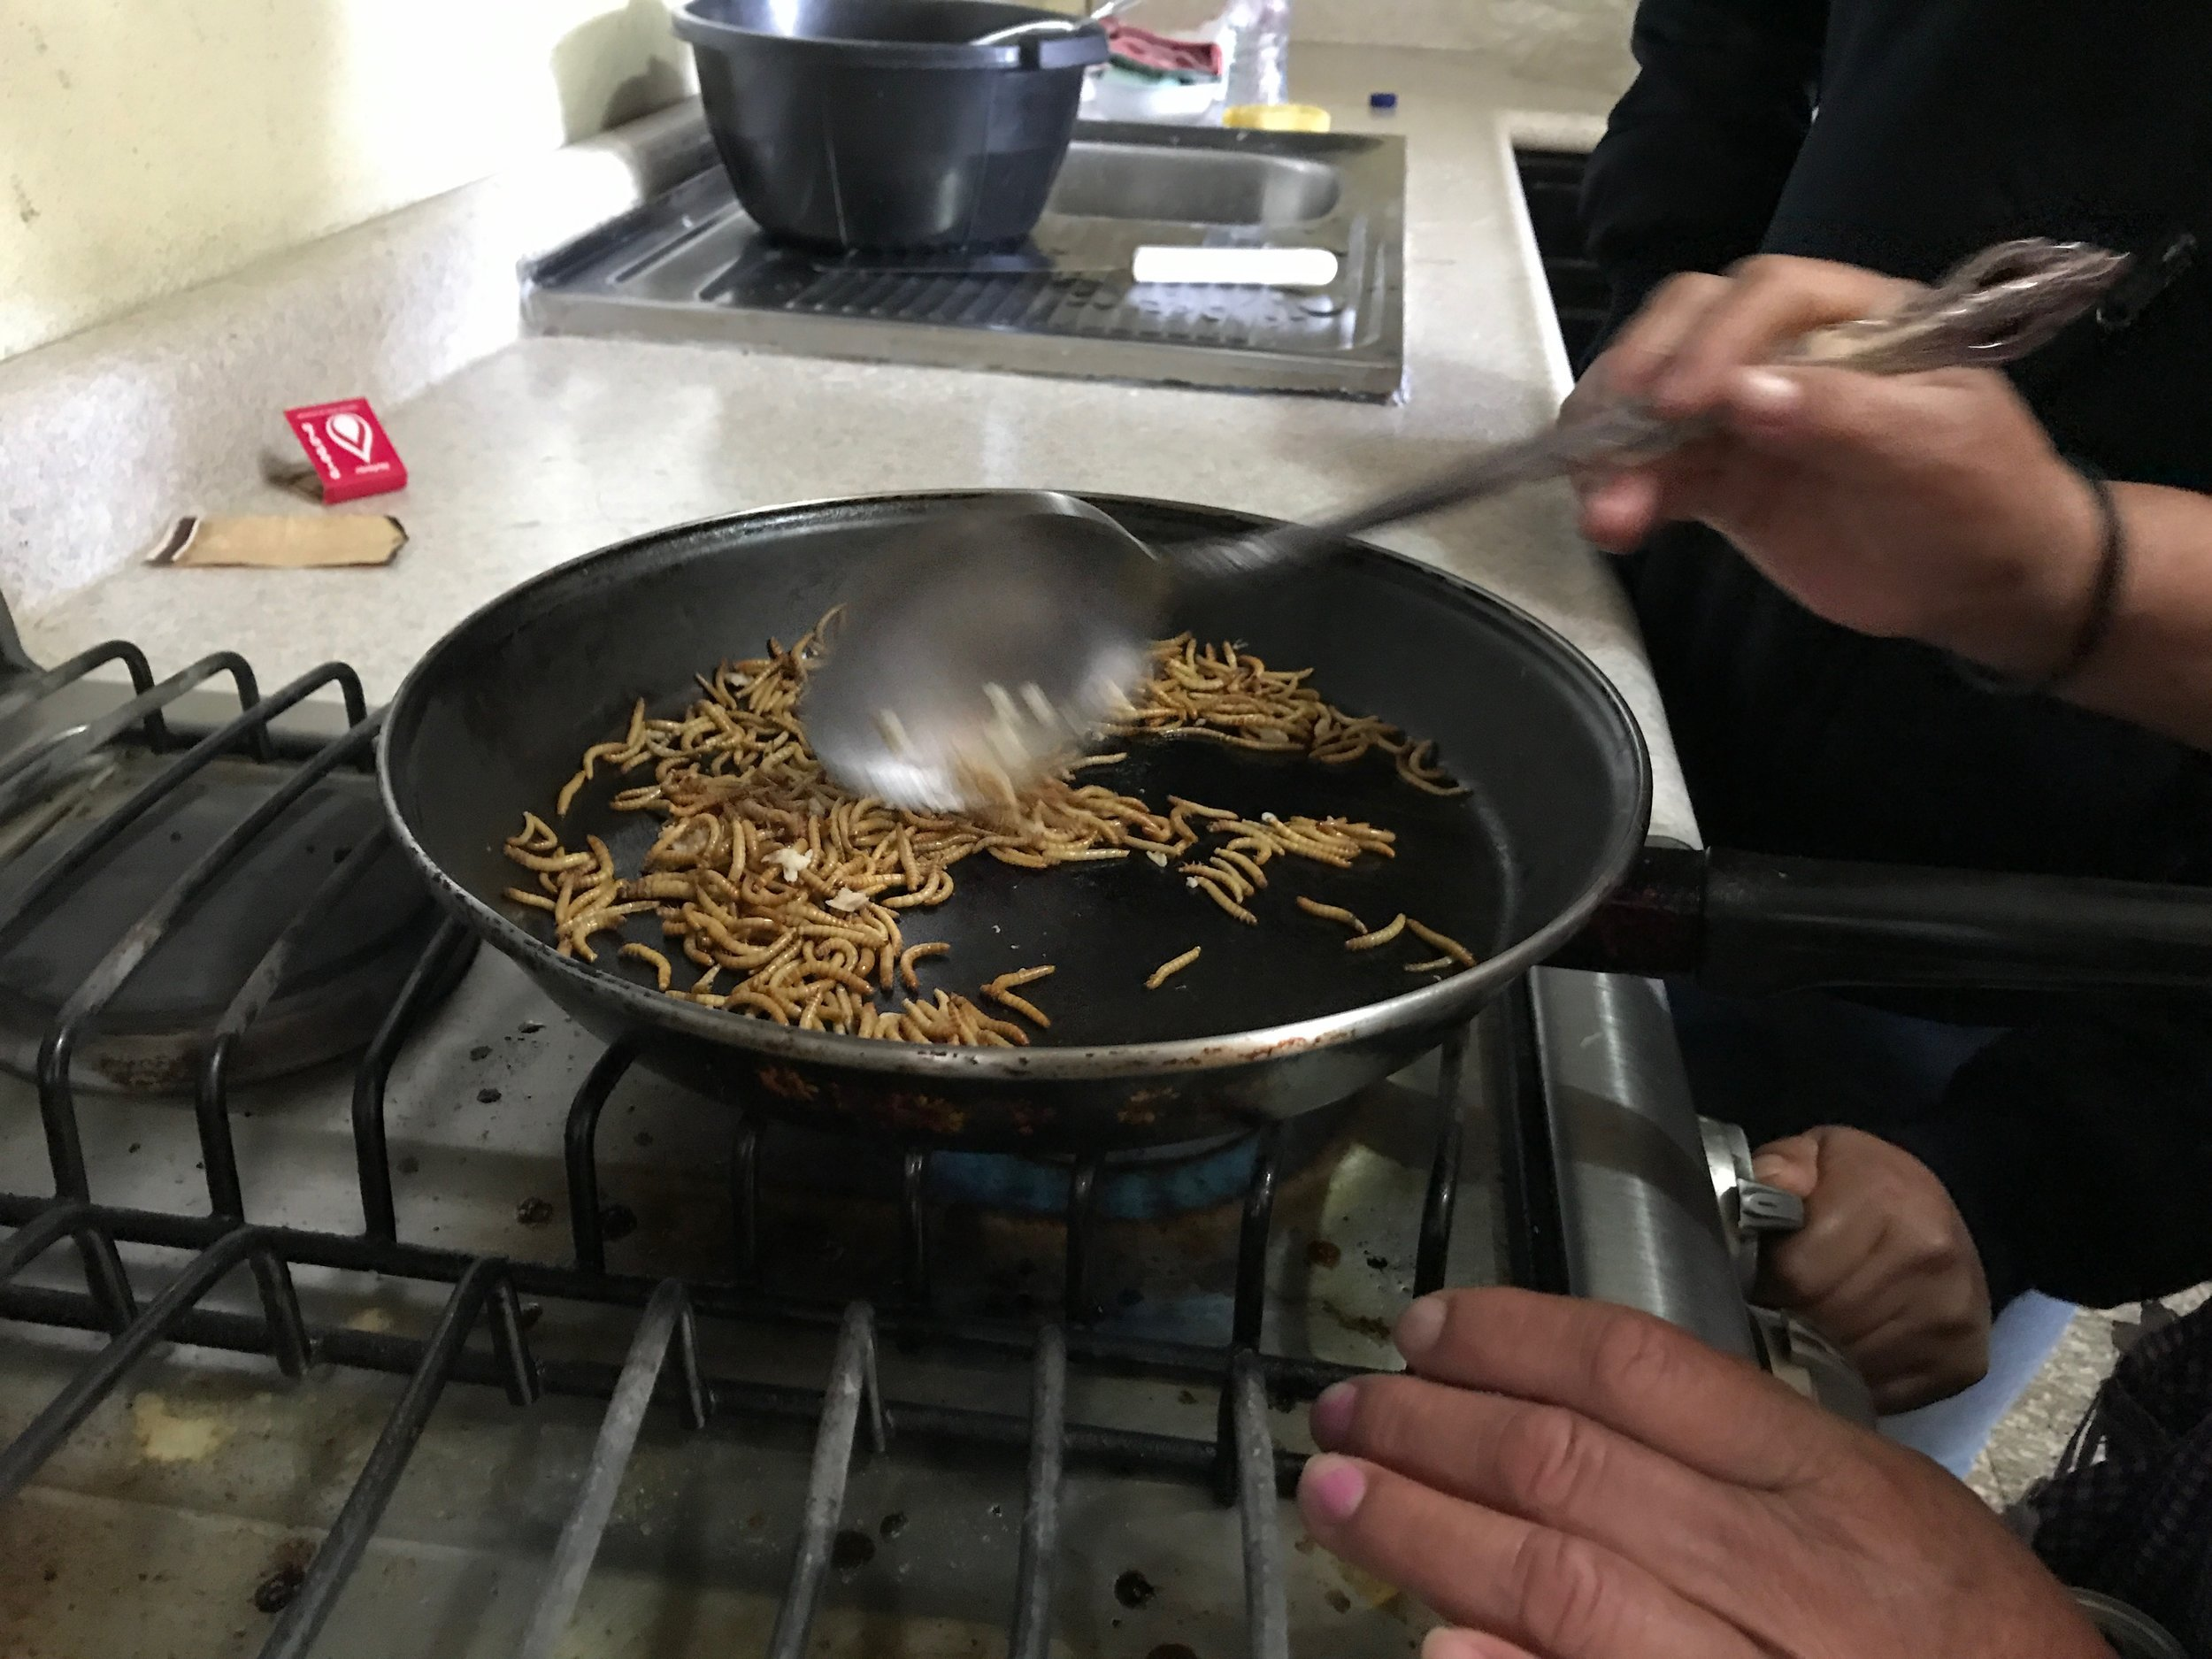 7:1:18 PEILE worms in pan and stove.JPG